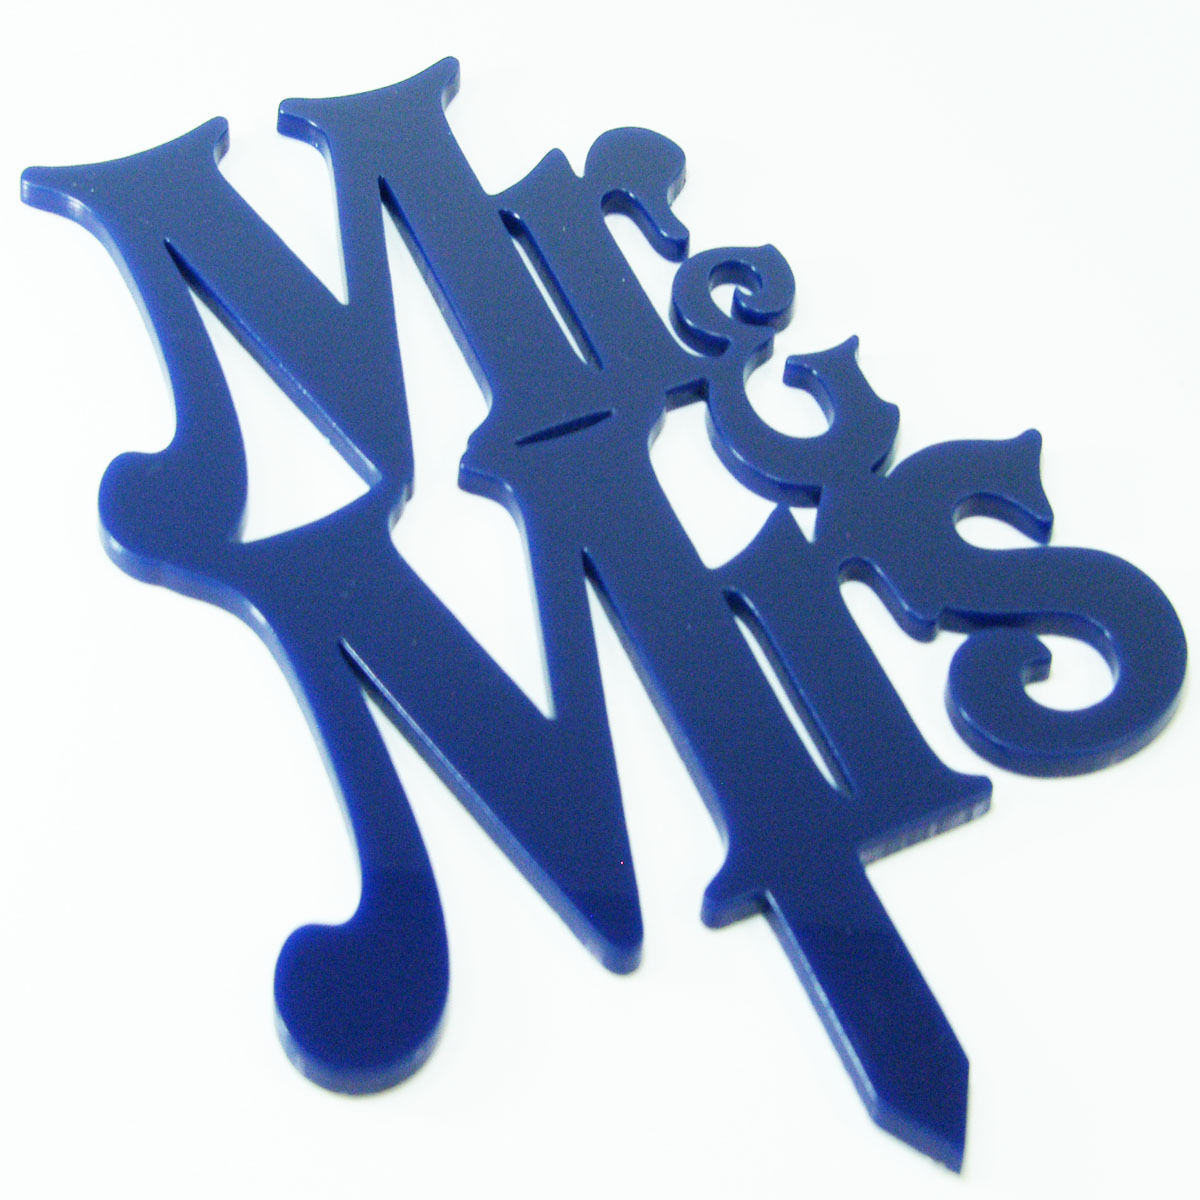 Mr and Mrs Curly Proposal Wedding Engagement Cake Decoration Topper Acrylic